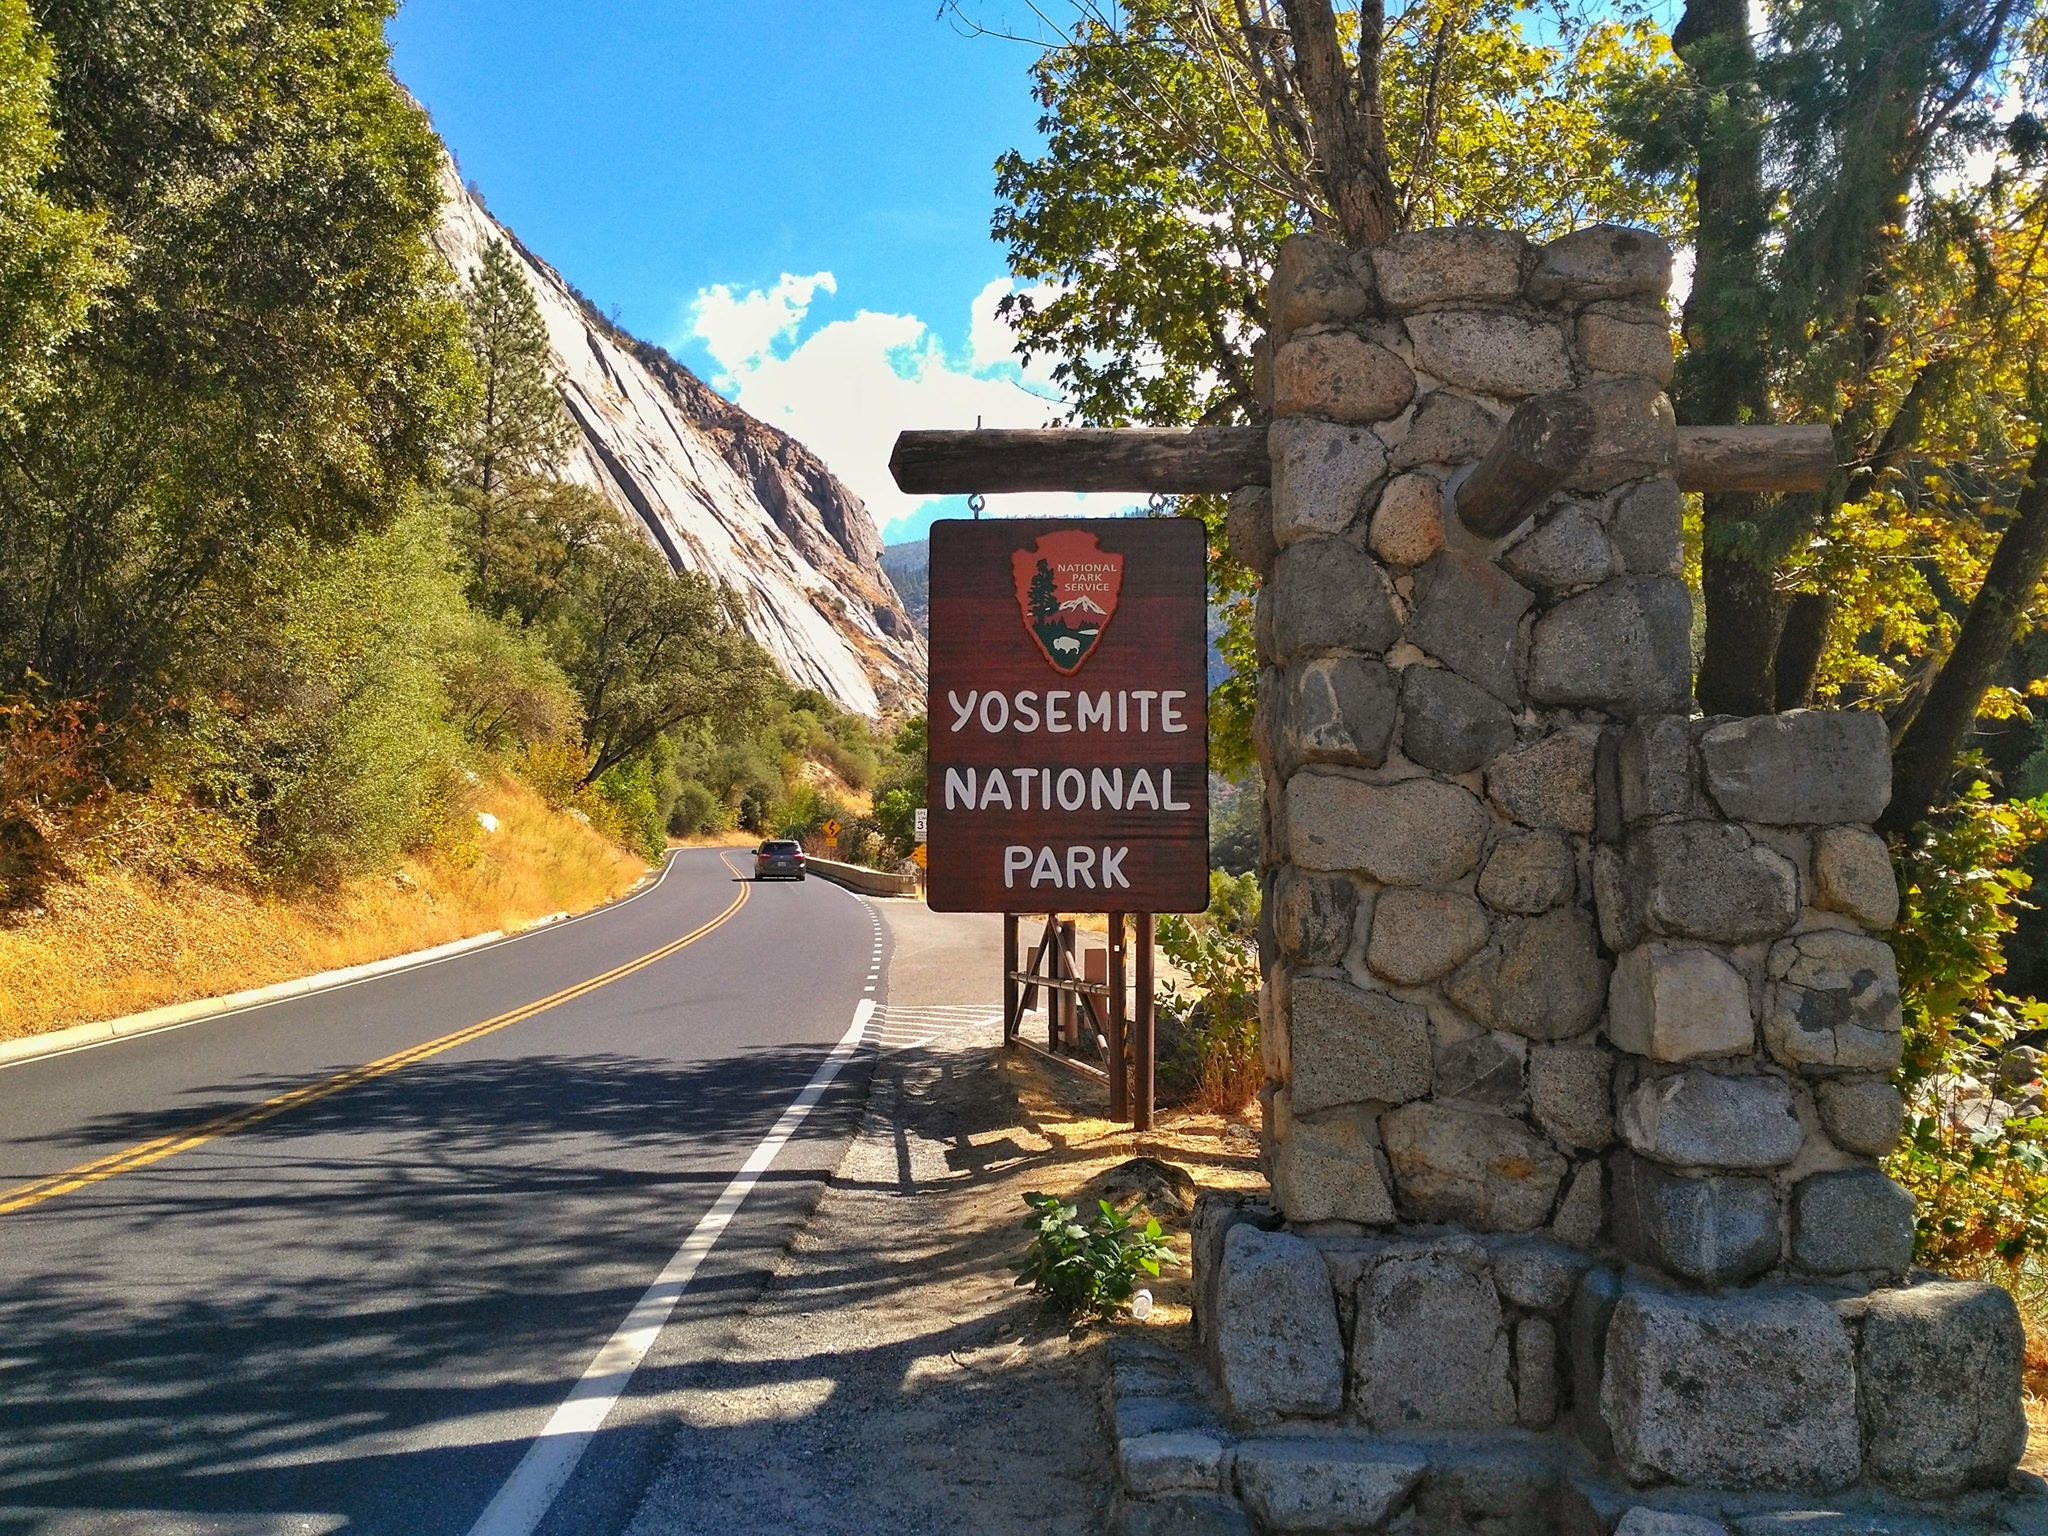 Day Trip from San Jose Yosemite - park entrance by car